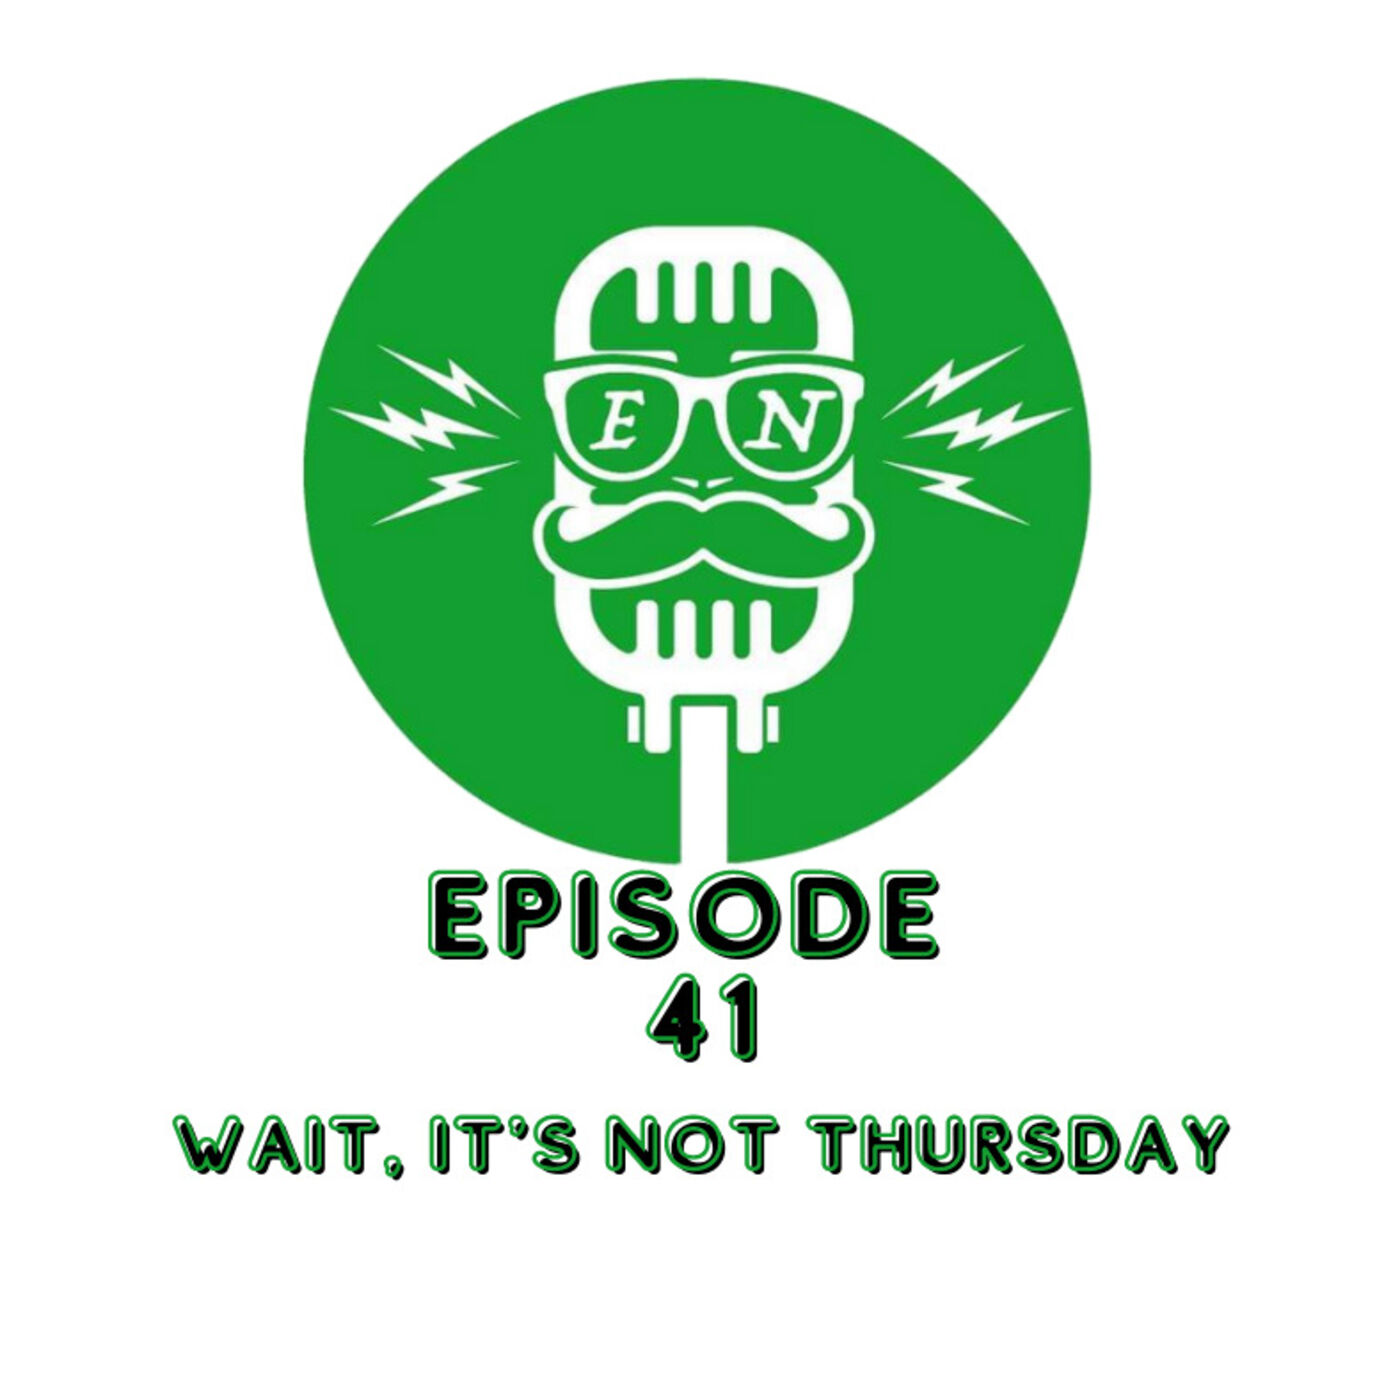 EveryNothing Podcast E41 - Wait, It's not Thursday!